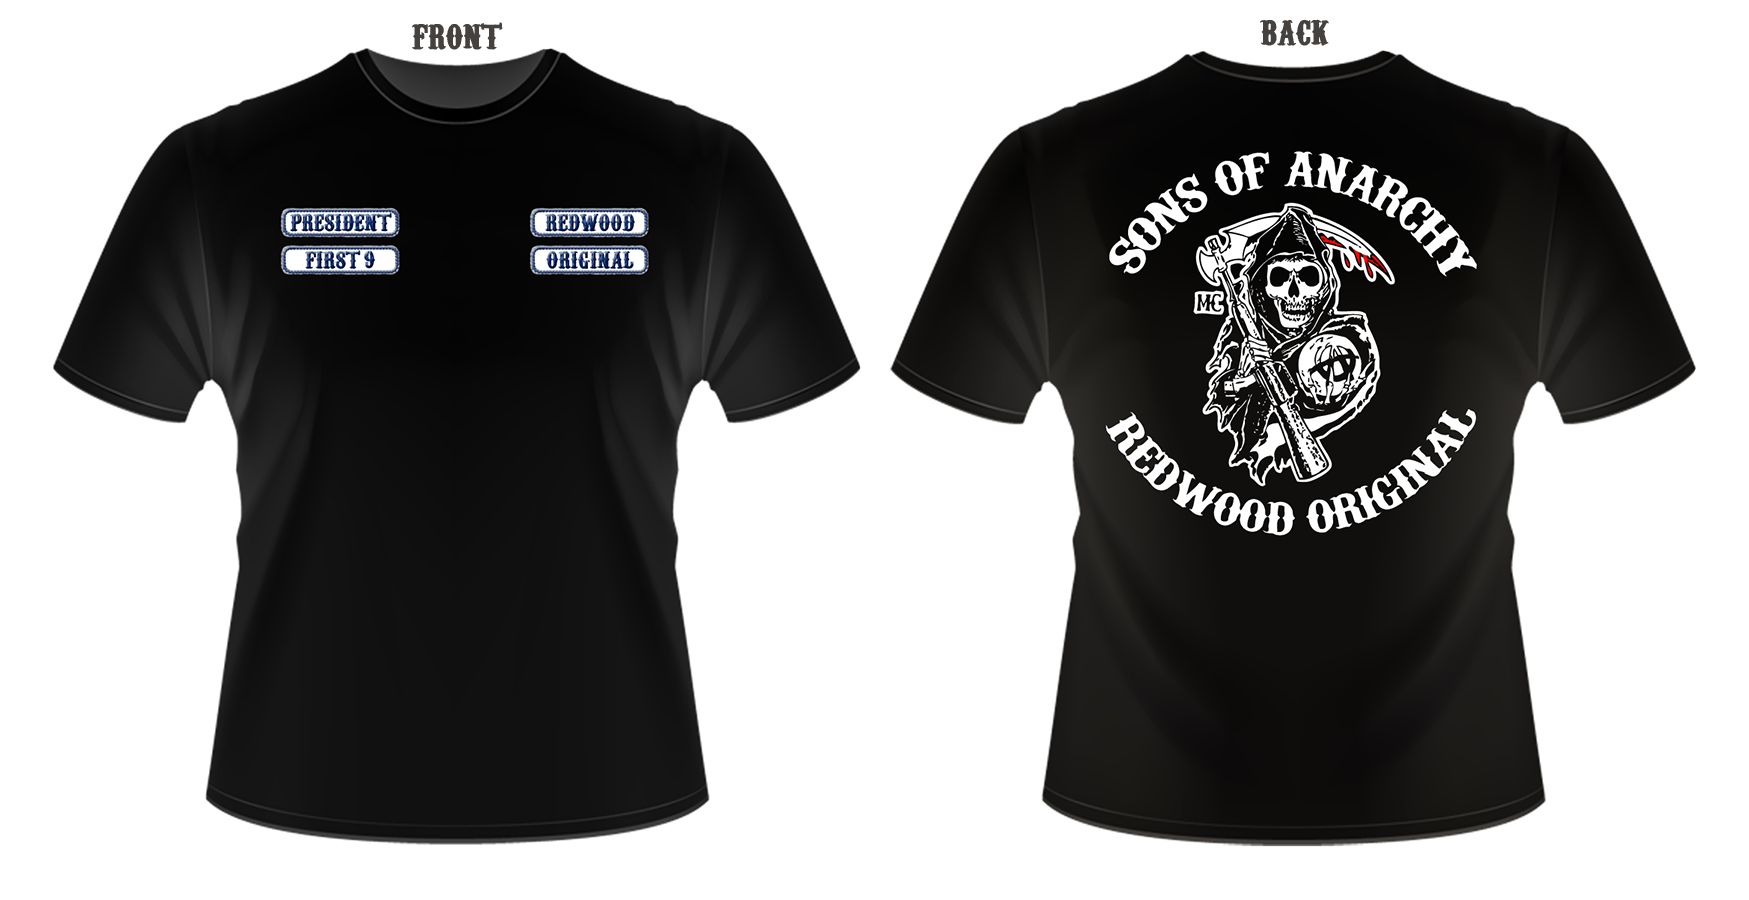 sons of anarchy t shirt design. Black Bedroom Furniture Sets. Home Design Ideas